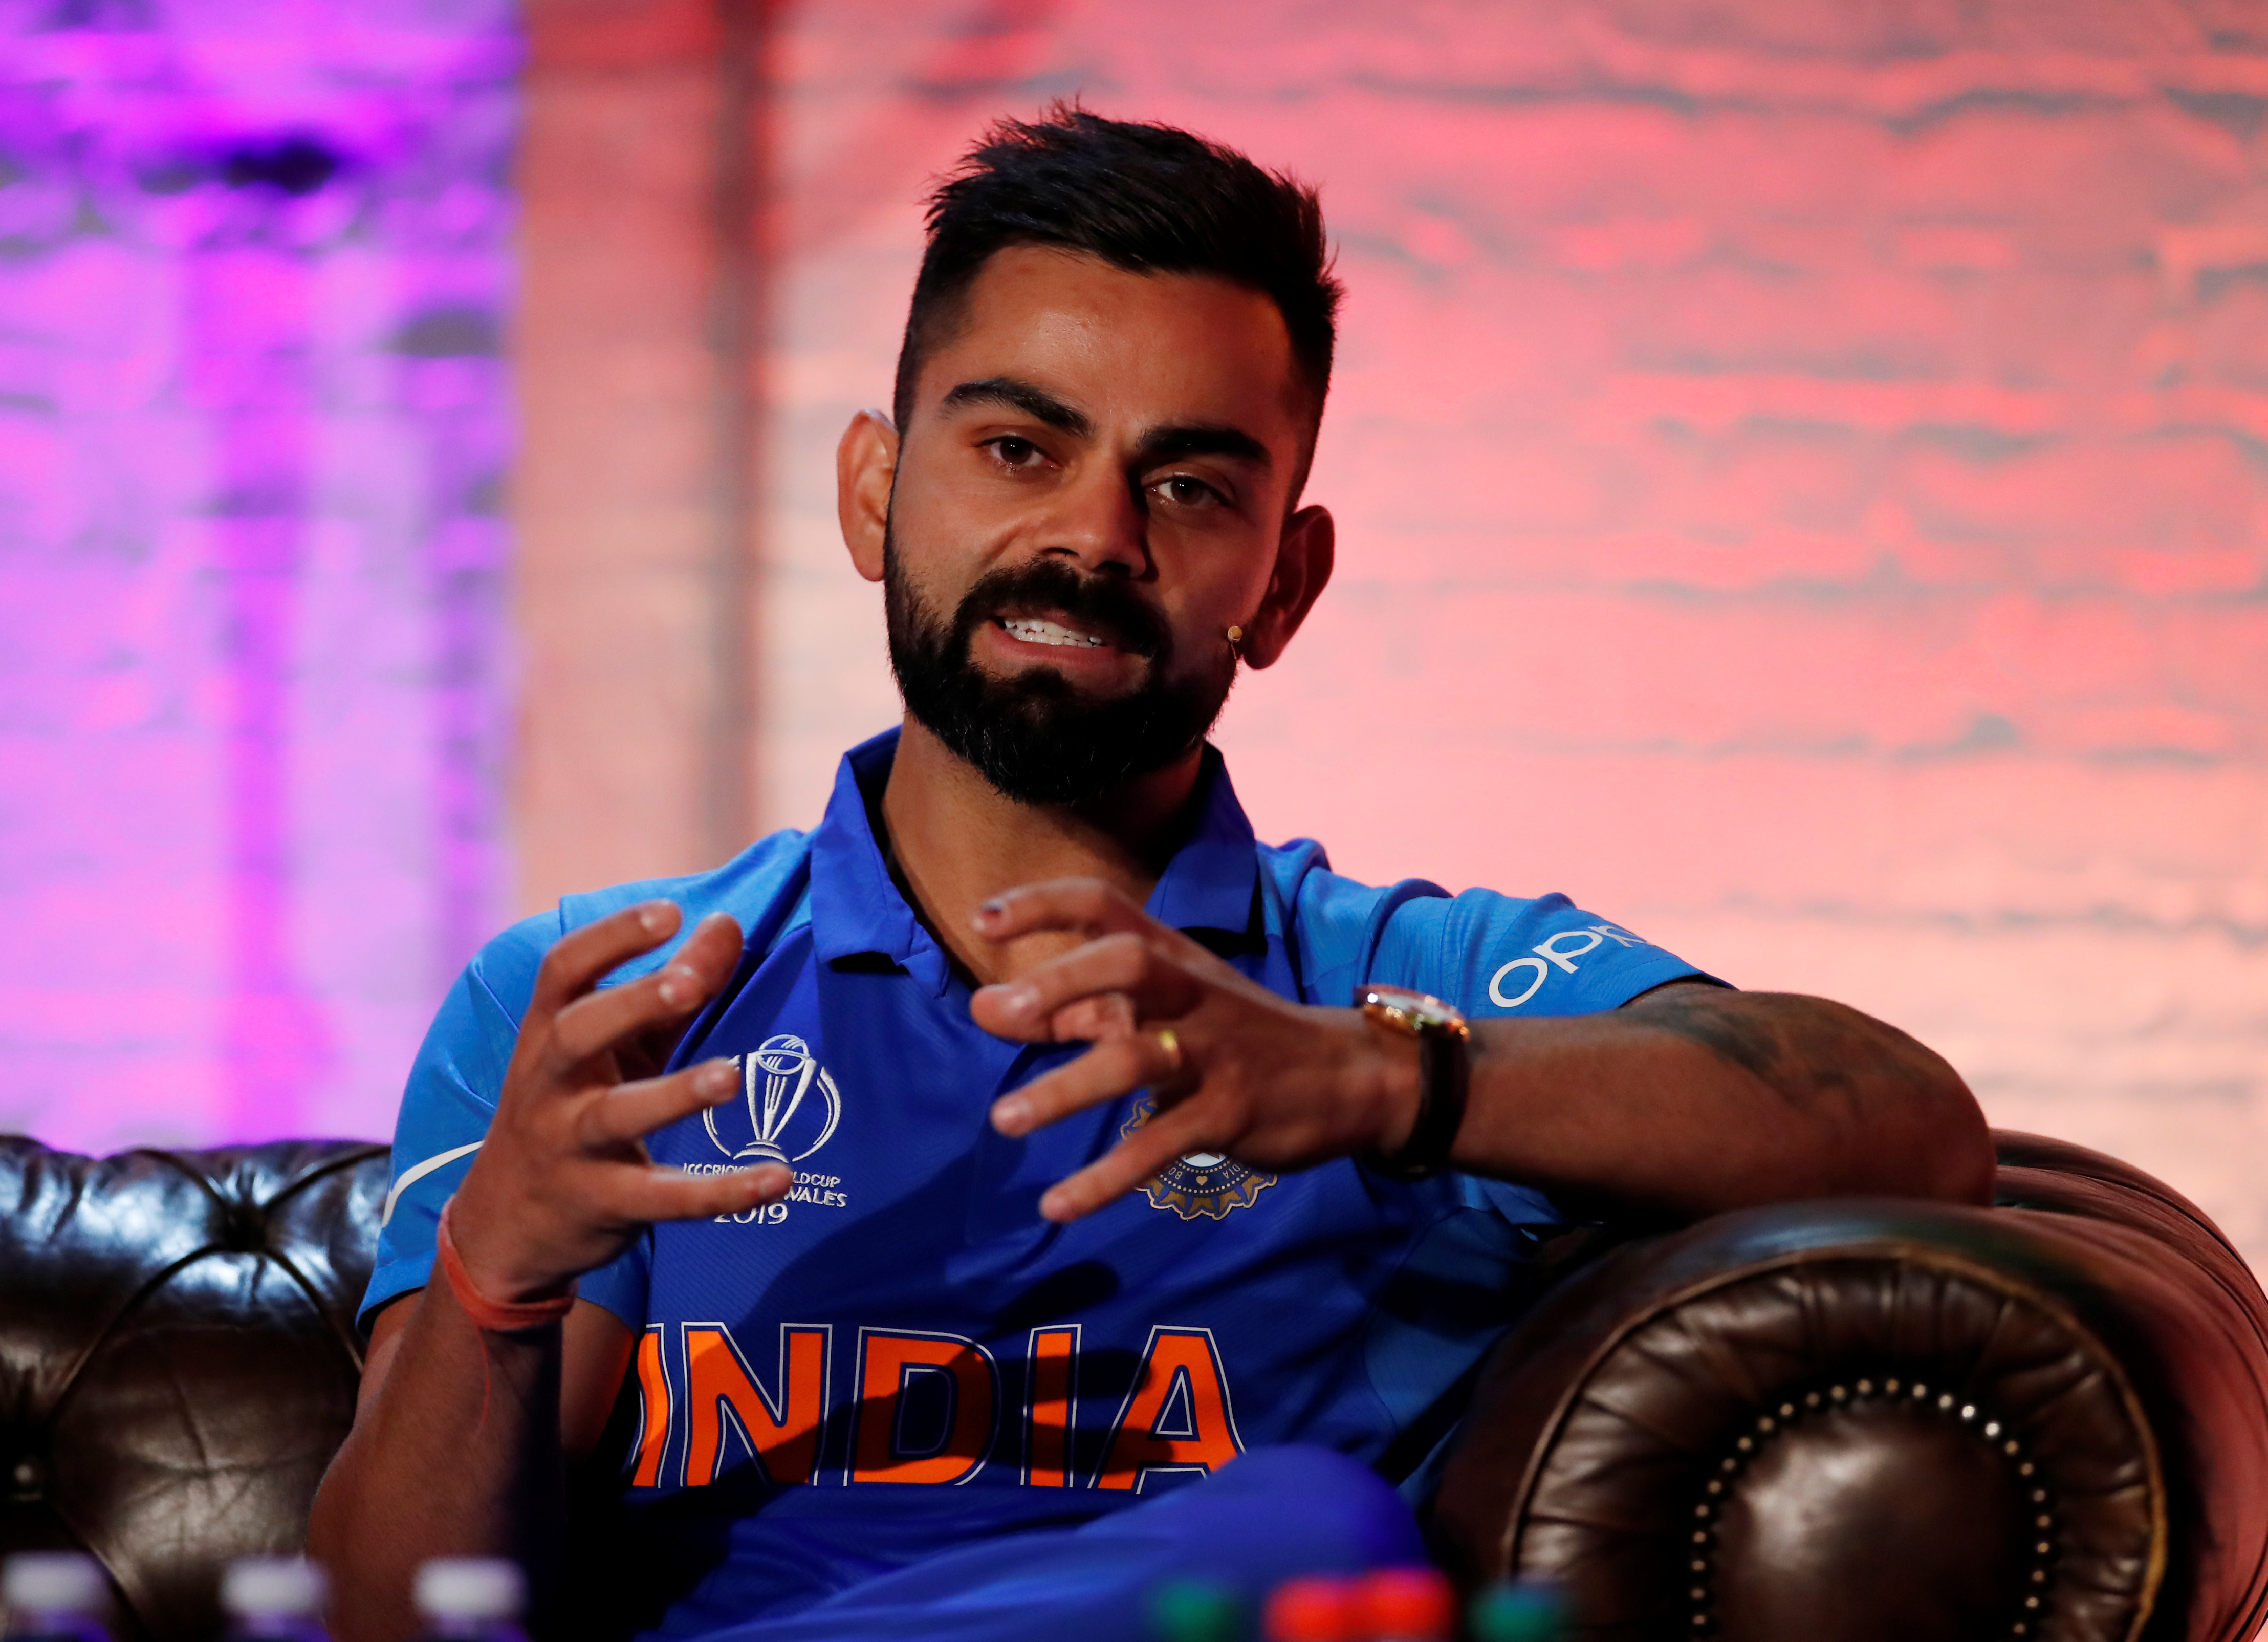 Cricket - ICC Cricket World Cup - Captains Press Conference - The Film Shed, London, Britain - May 23, 2019   India's Virat Kohli during the press conference   Action Images/Andrew Boyers/Pool